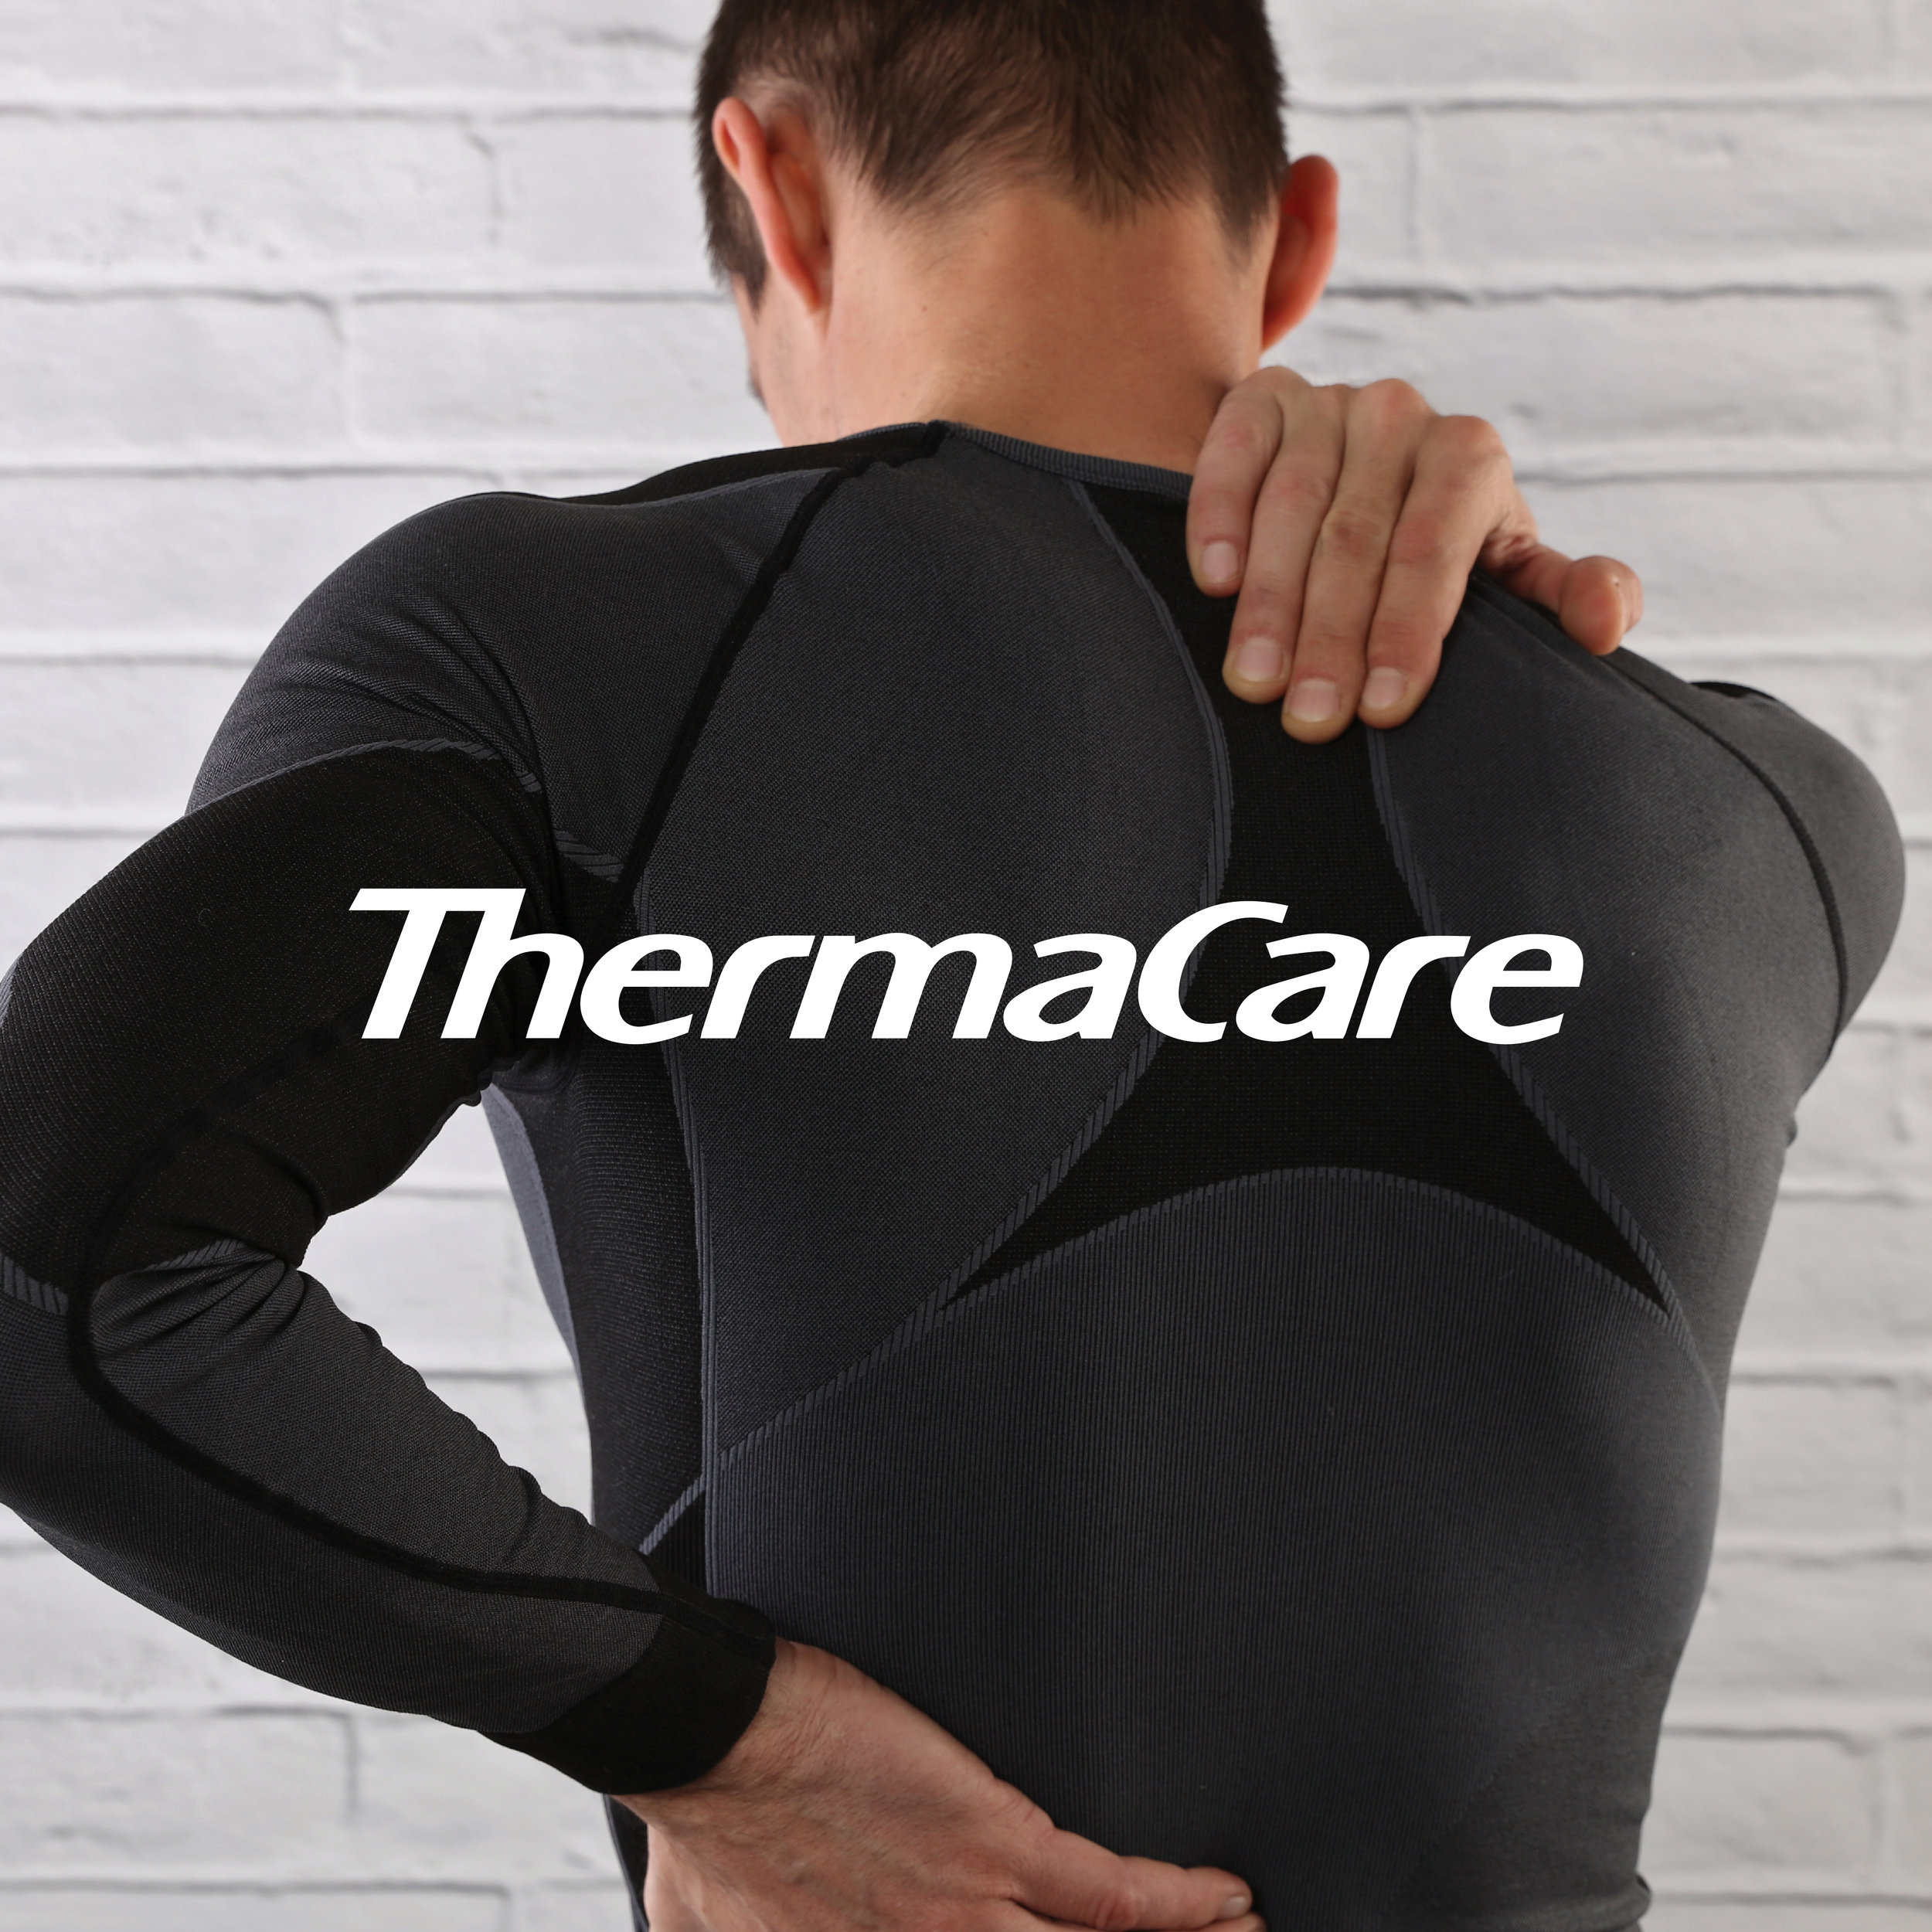 ThermaCare (Pfizer)